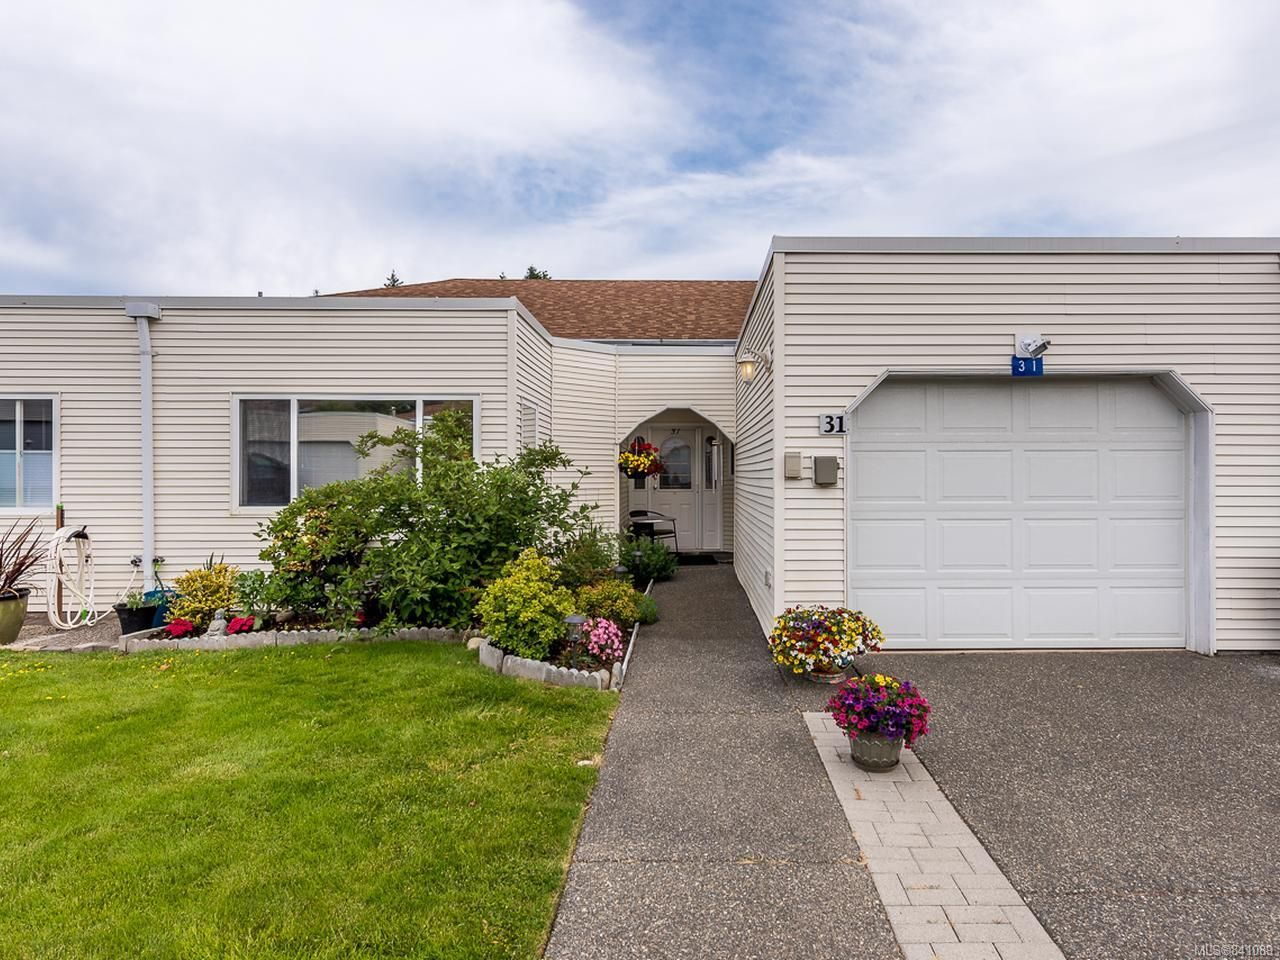 Main Photo: 31 677 Bunting Pl in COMOX: CV Comox (Town of) Row/Townhouse for sale (Comox Valley)  : MLS®# 841089